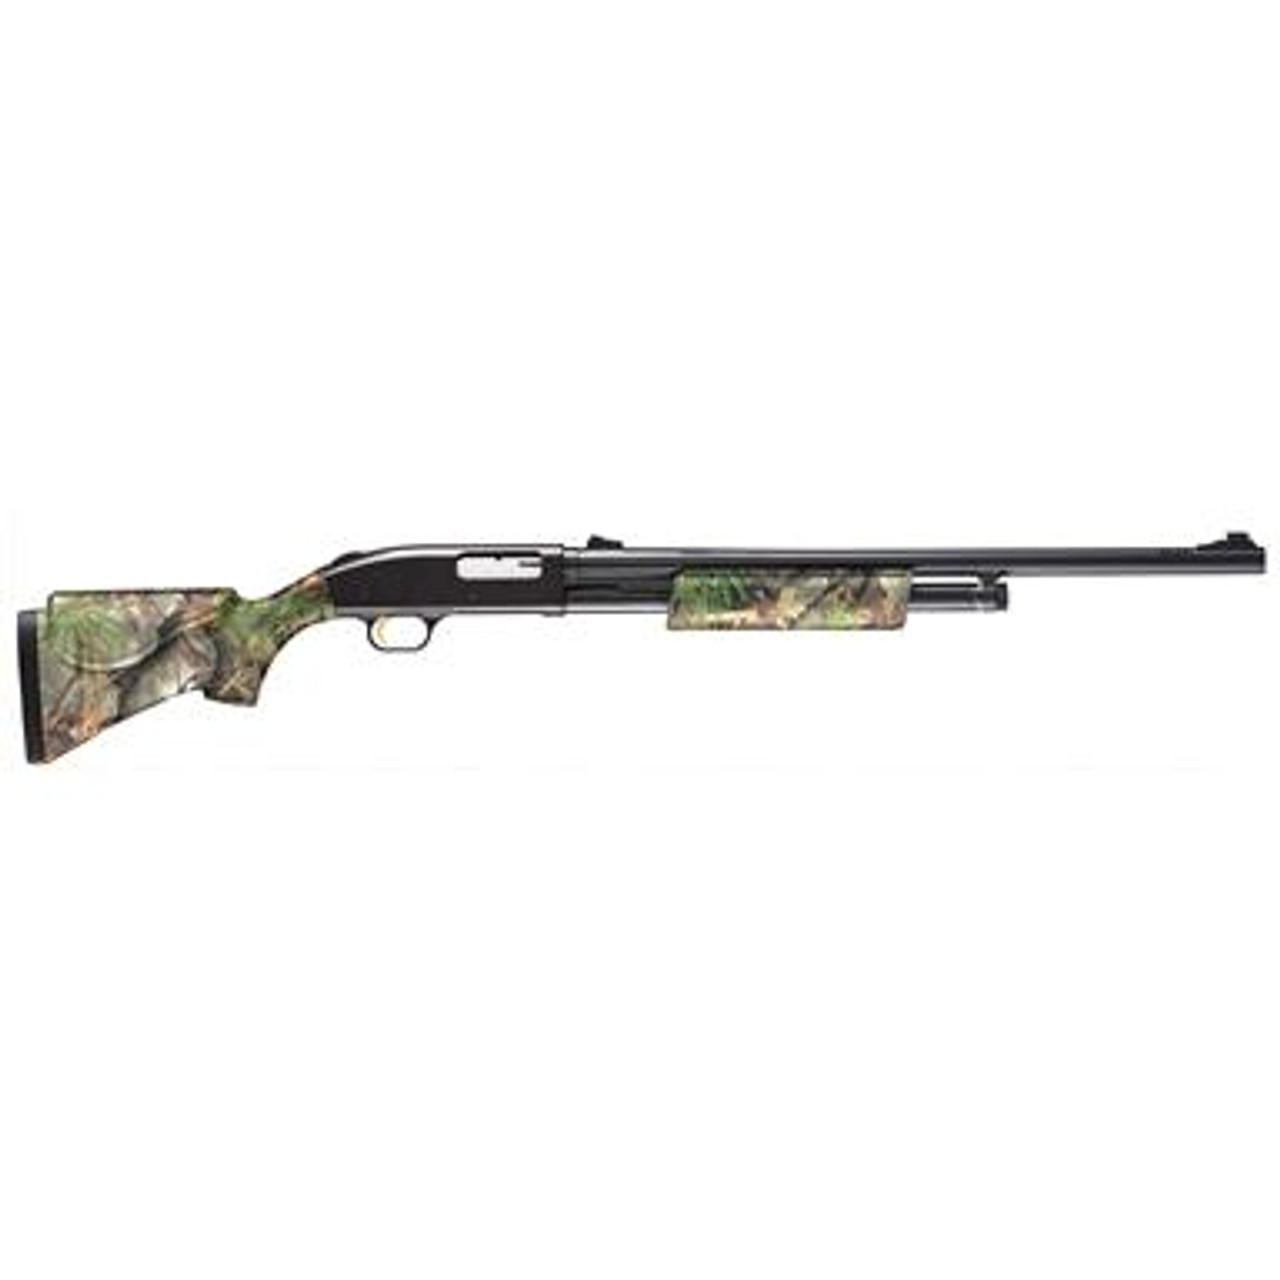 ATI Camouflage Adjustable Hunting Stock W/ Forend